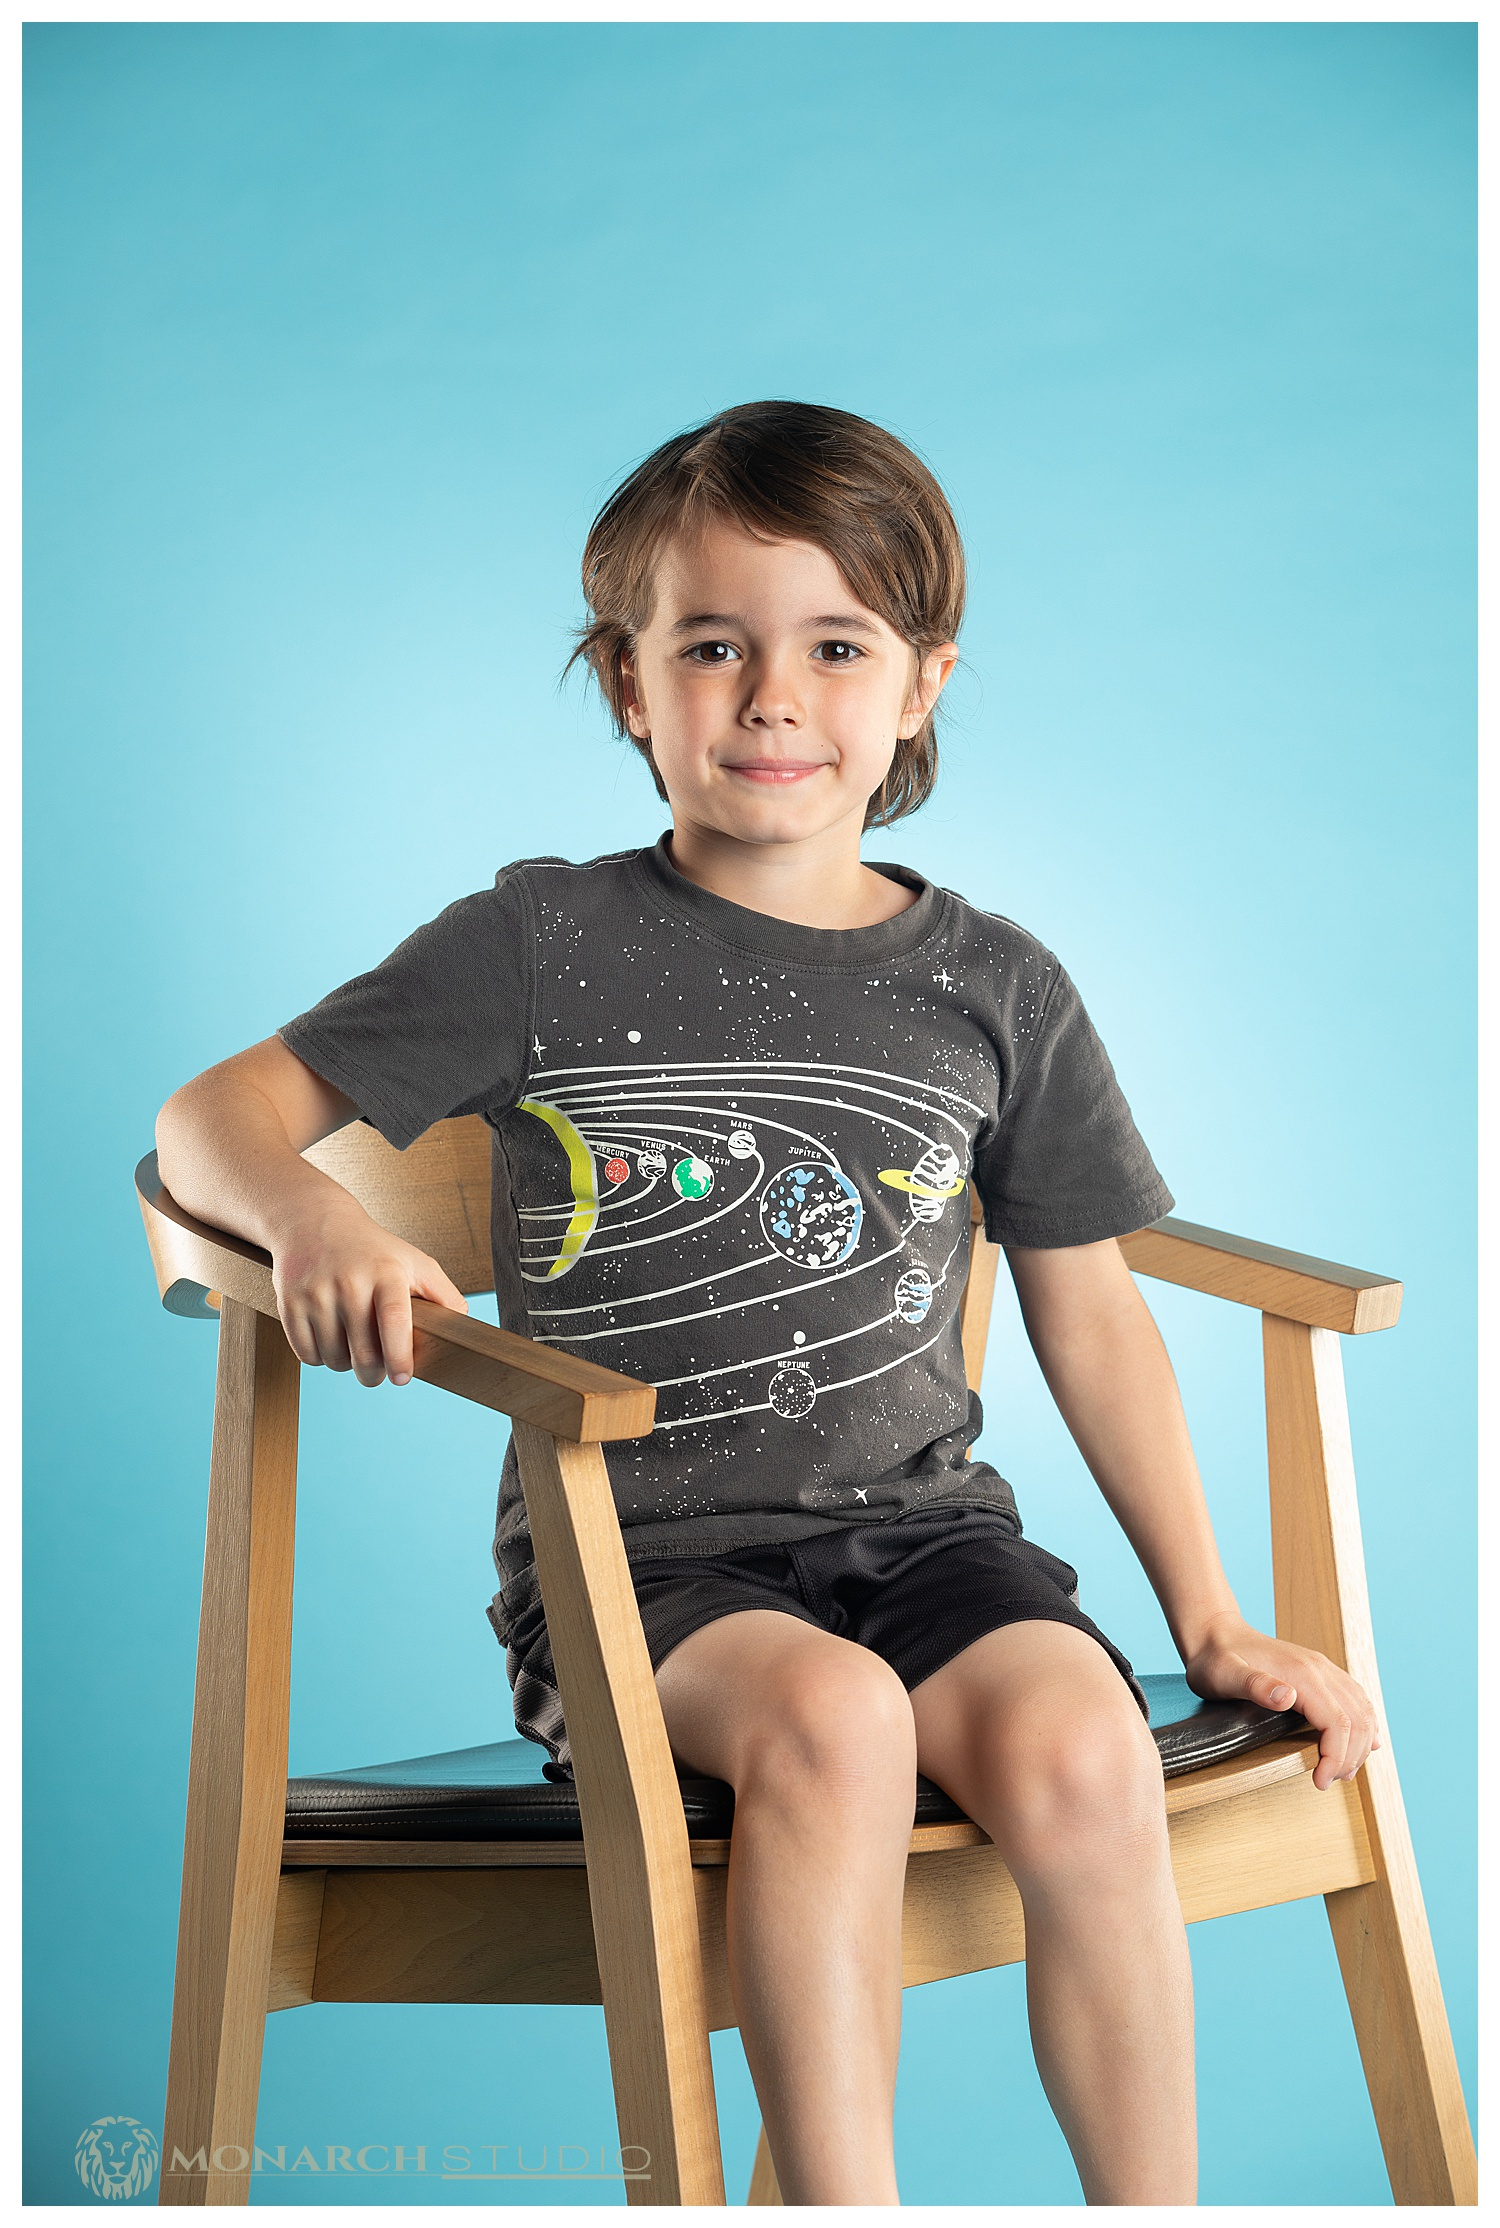 North Florida Kids Photography Studio - 003.JPG